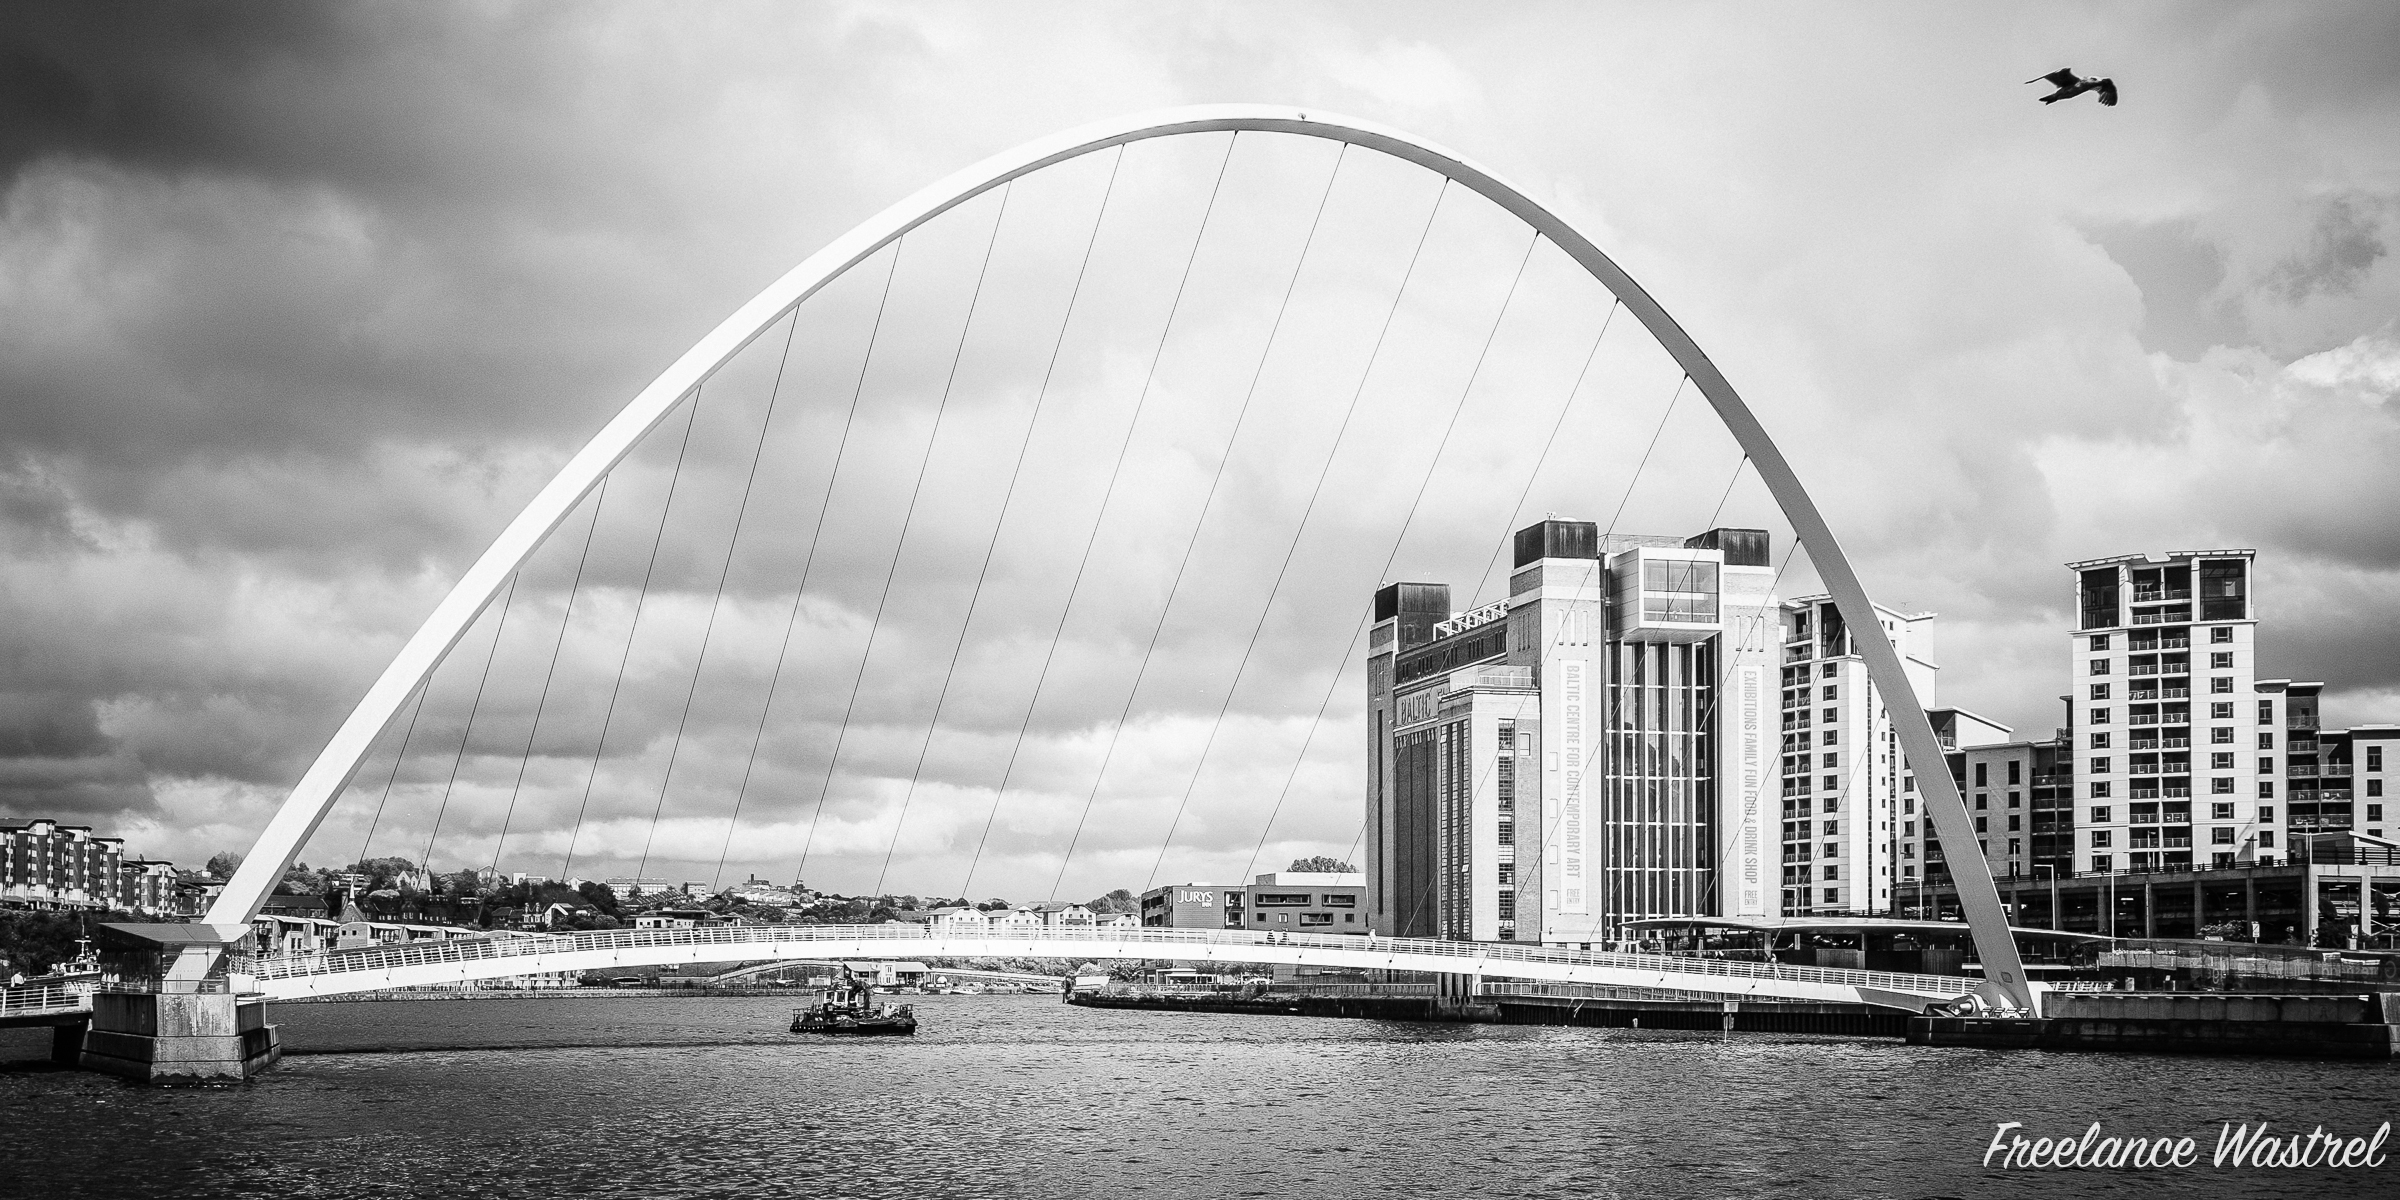 Gateshead Millenium Bridge, June 2015